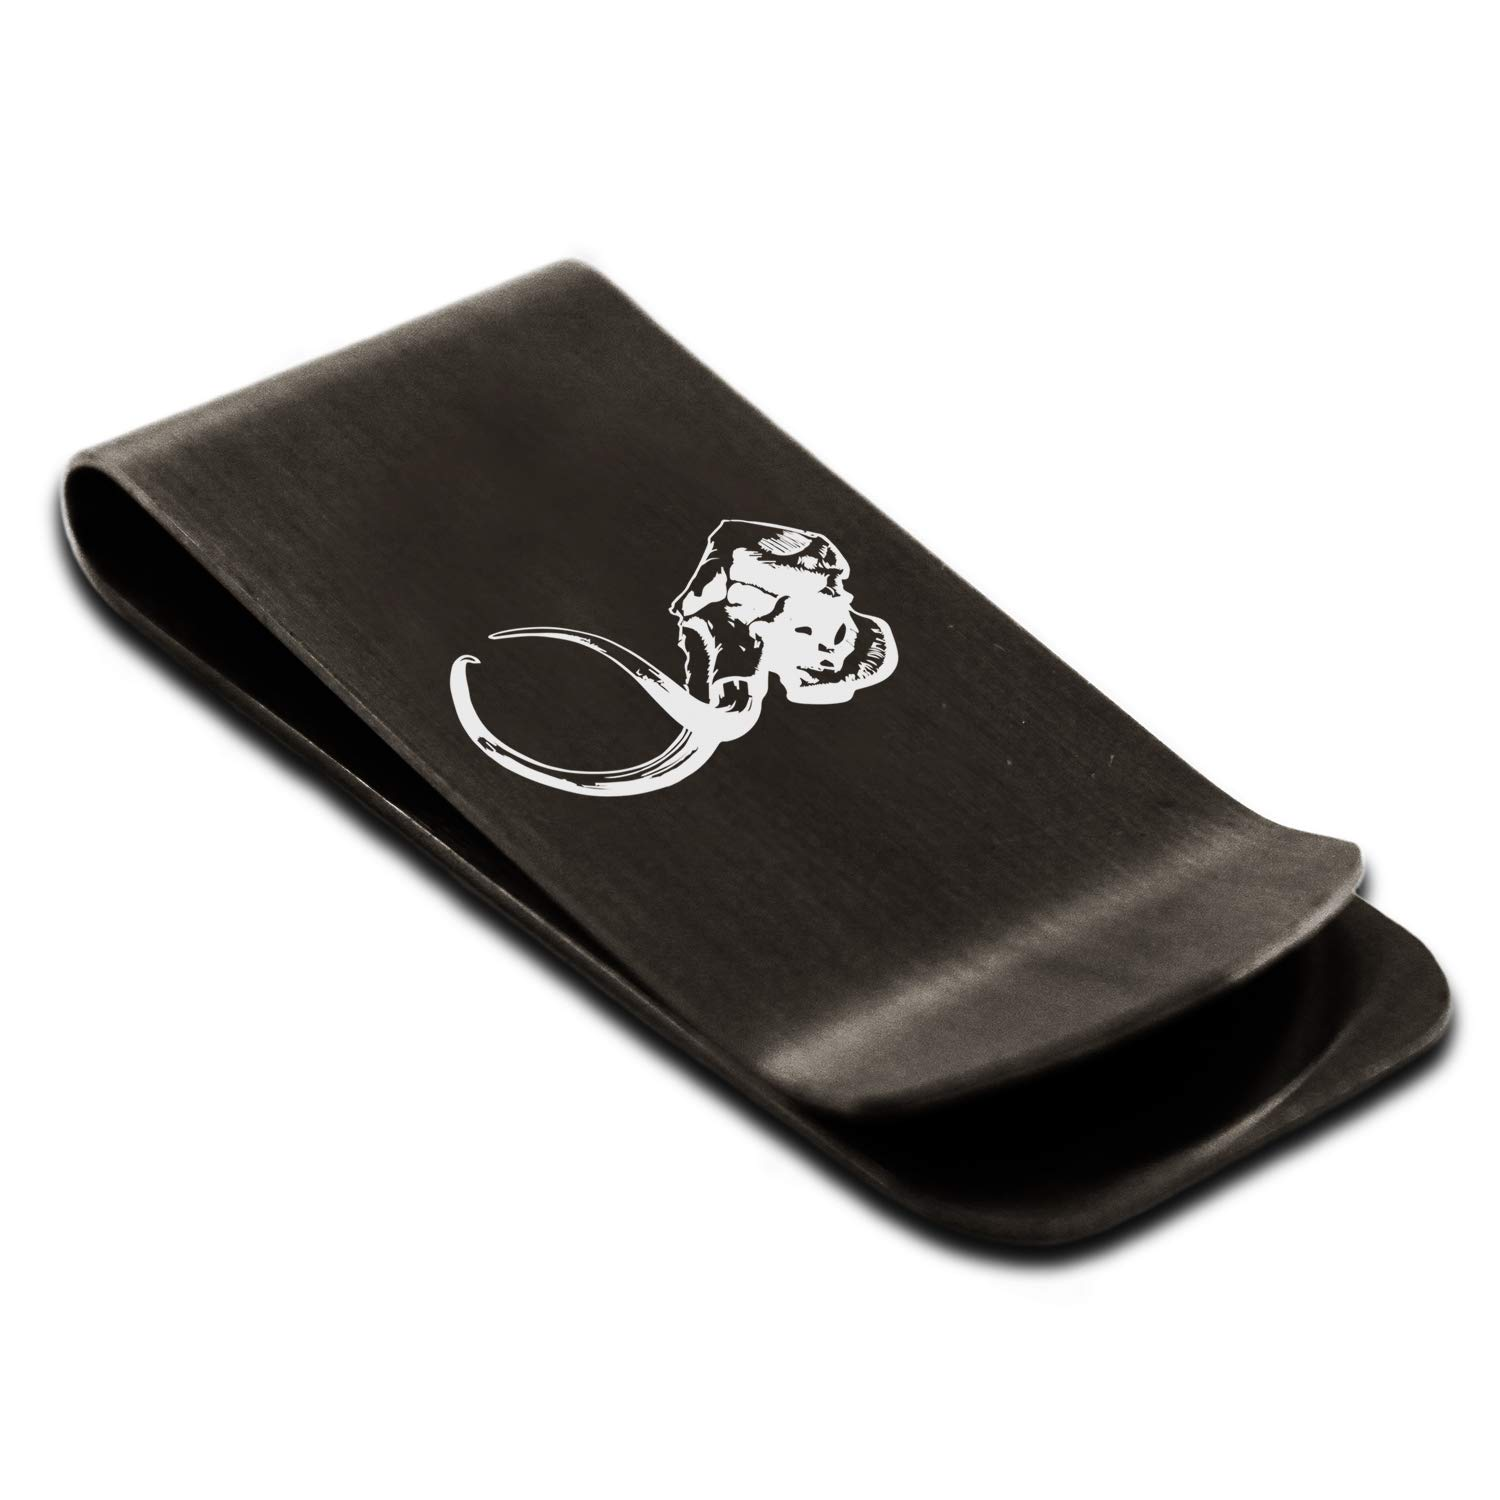 Stainless Steel Woolly Mammoth Skull Money Clip Credit Card Holder